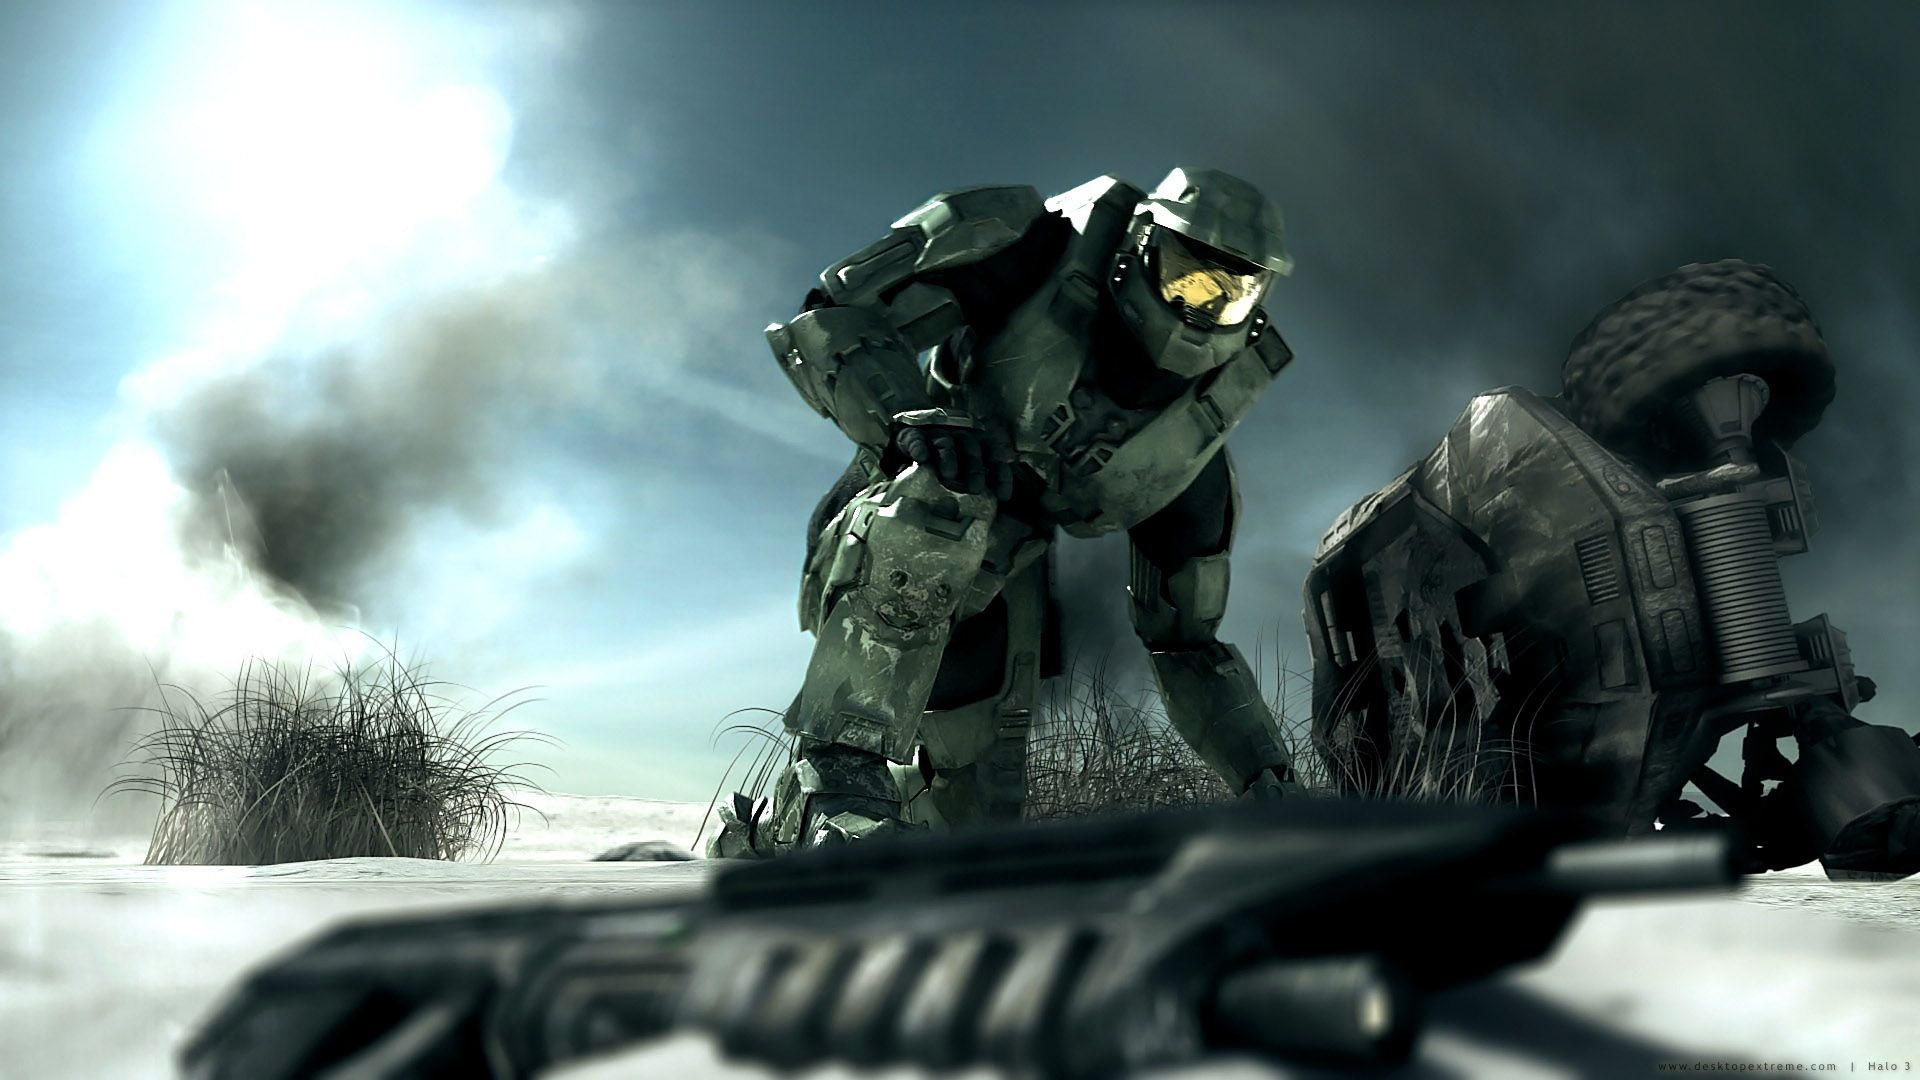 halo wallpaper widescreen games background 1920x1080 1920x1080